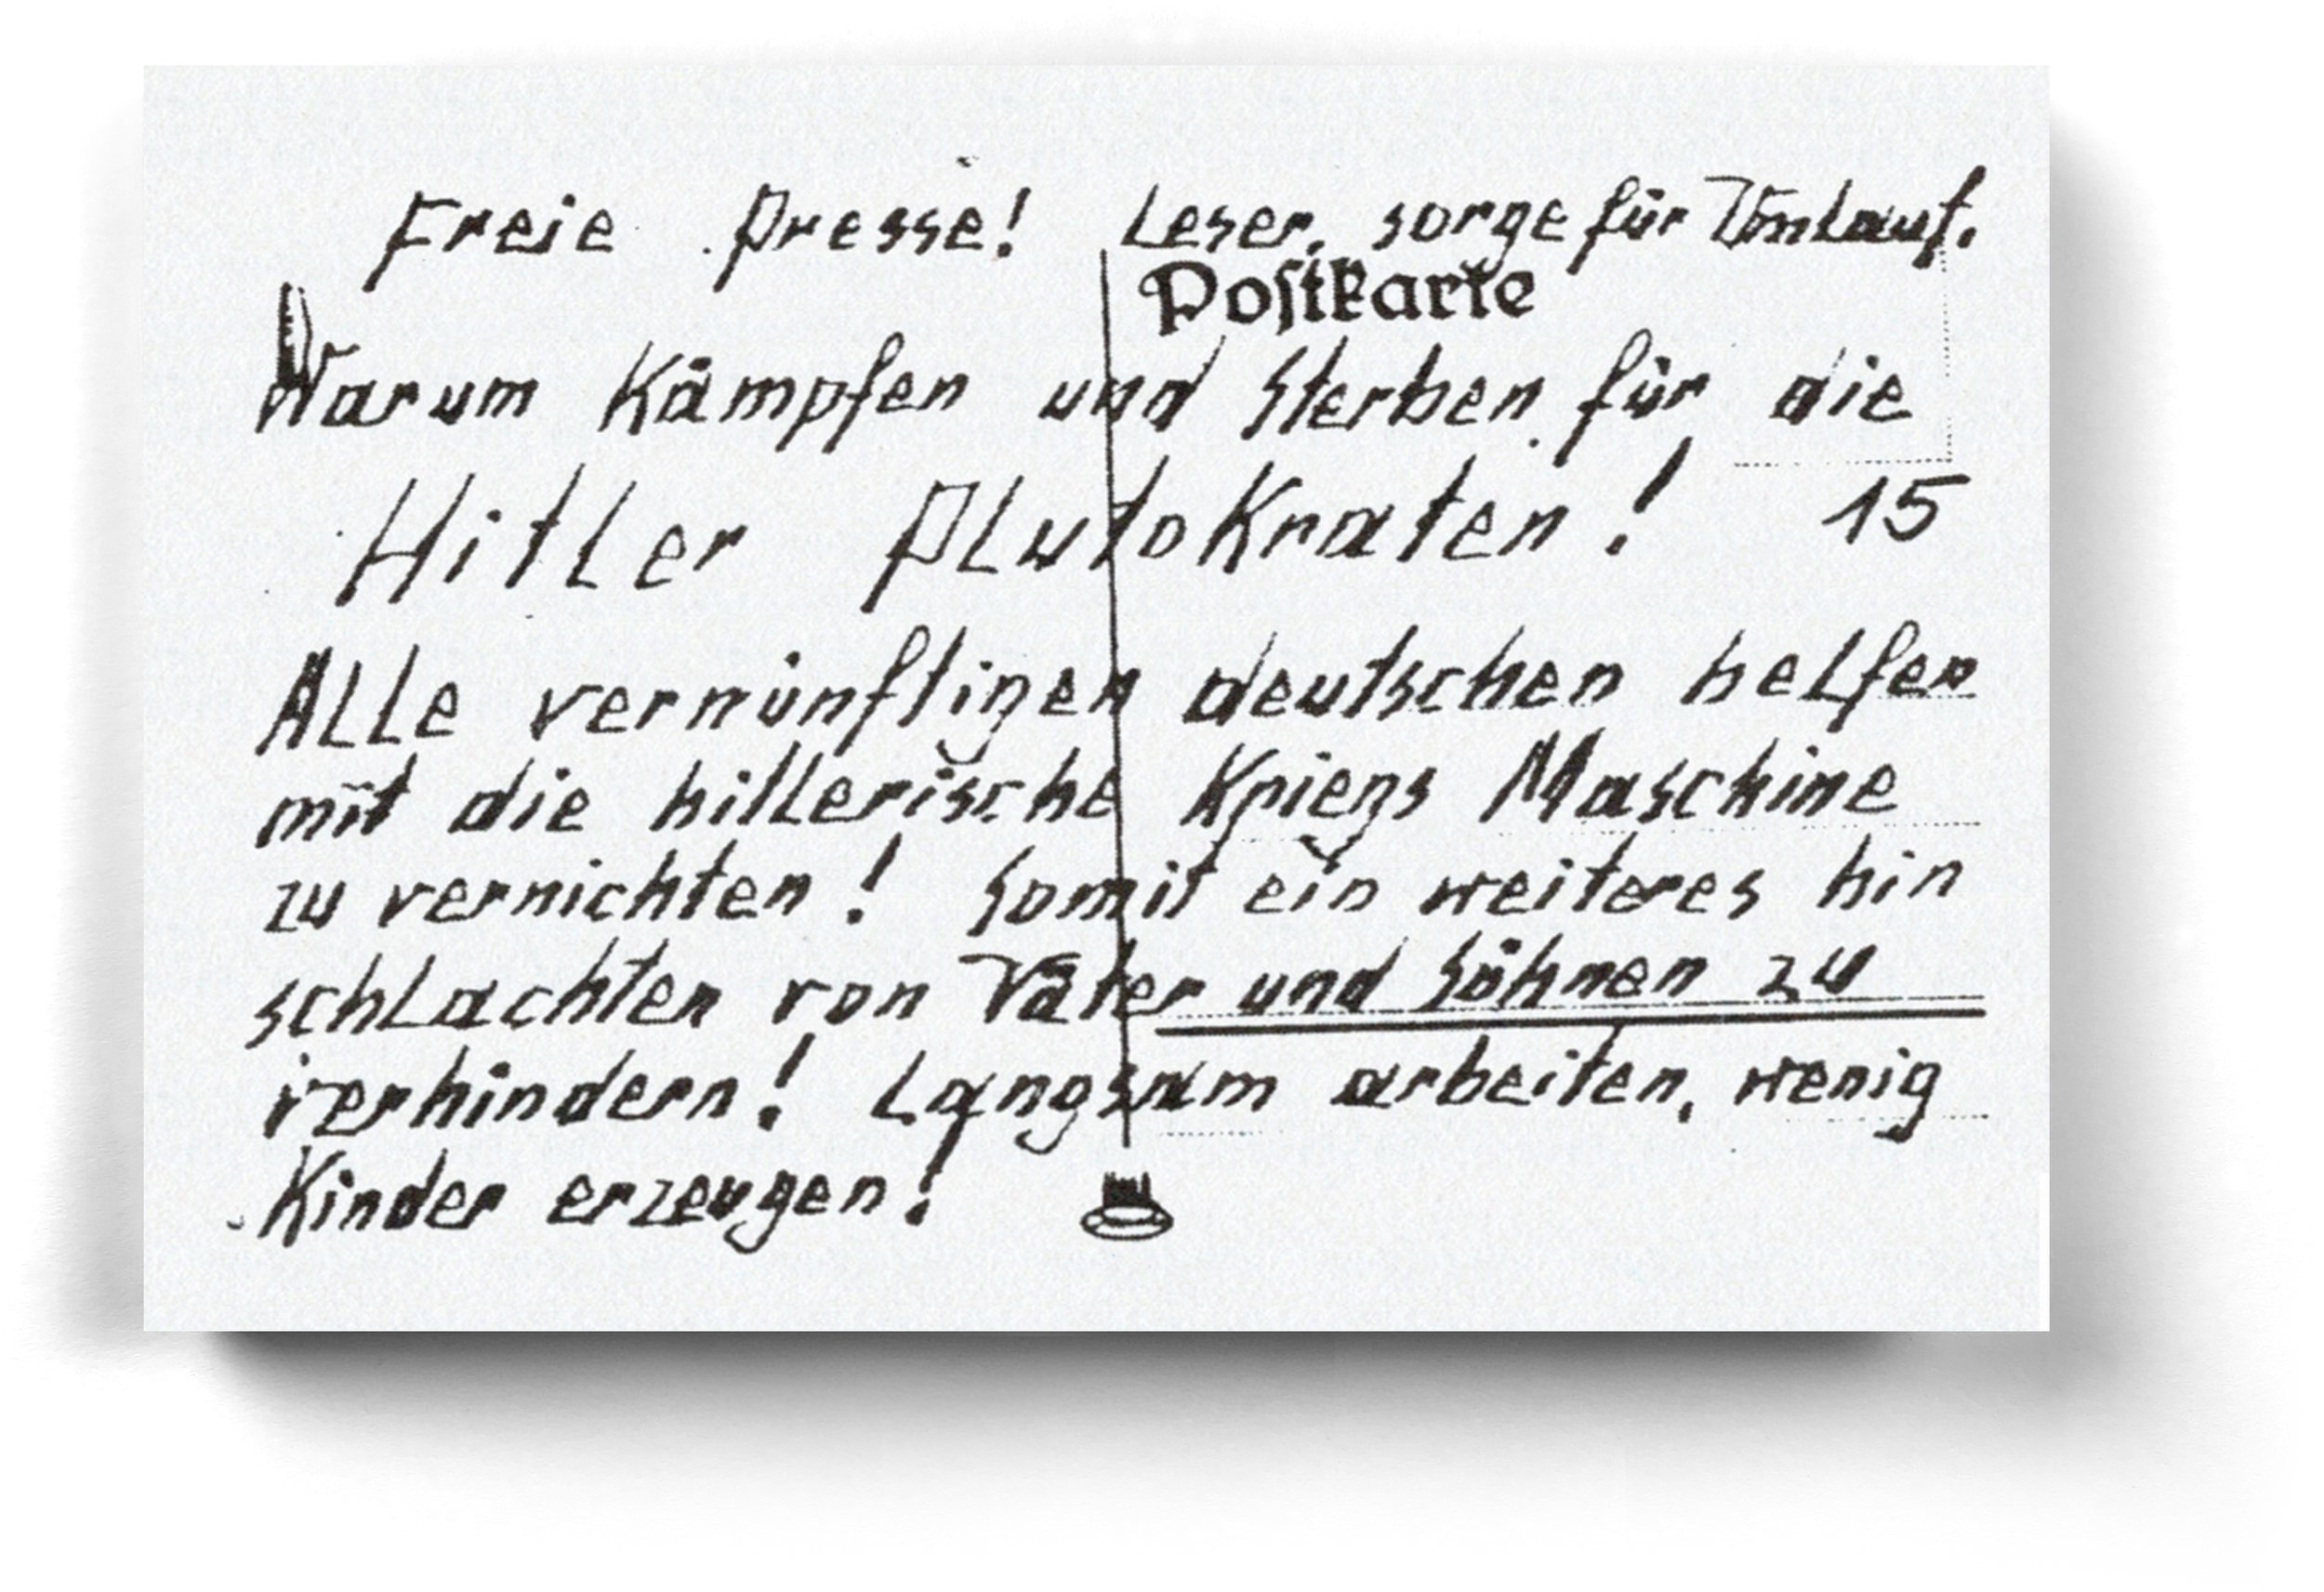 german-postcard-free-press.jpg